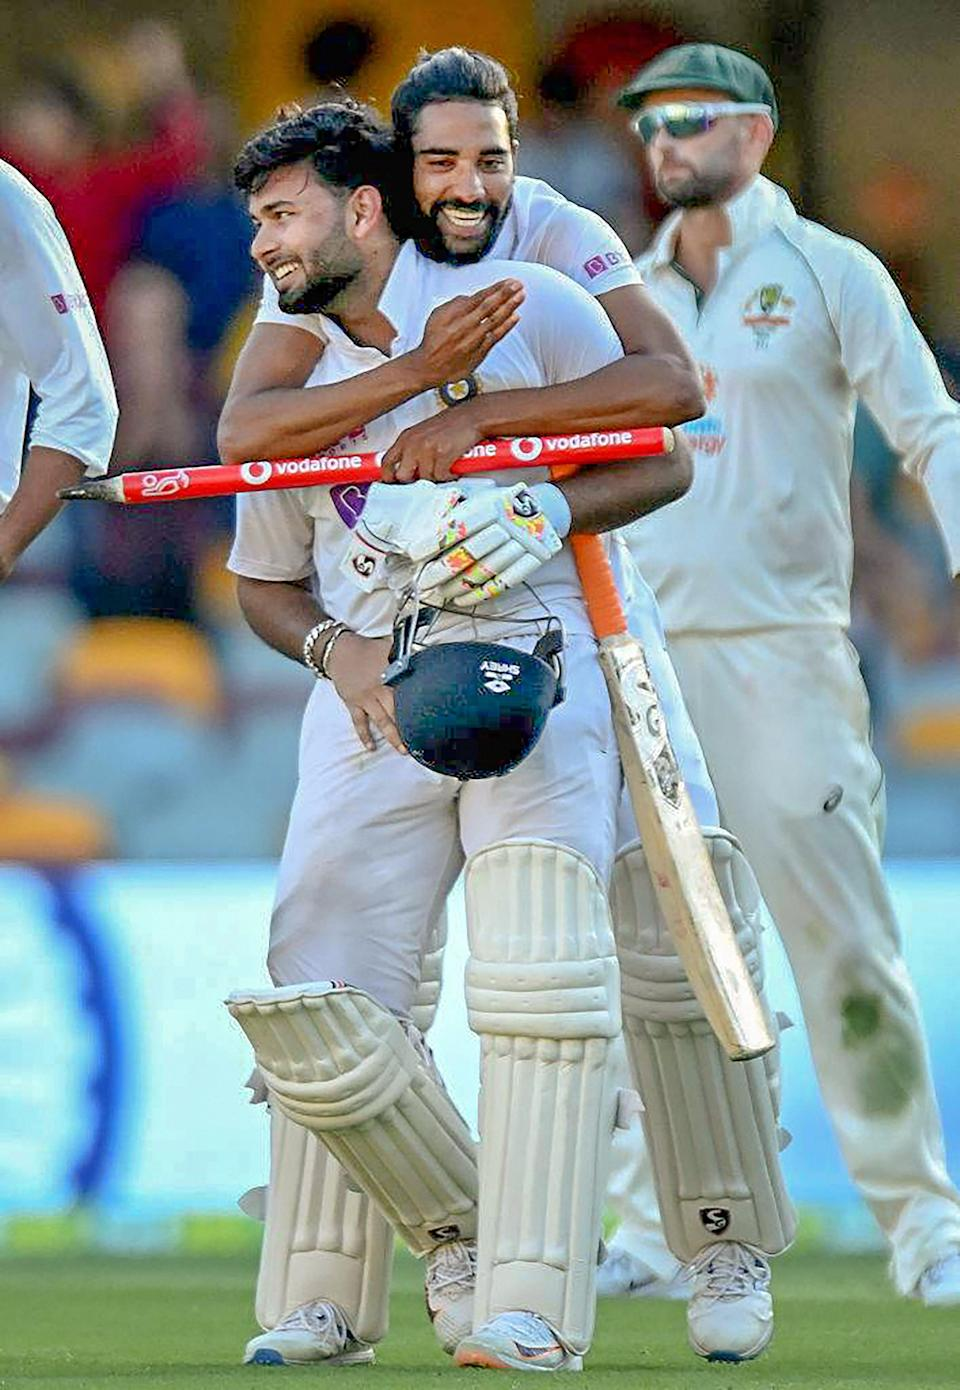 Indian players Shardul Thakur and Mohd Siraj celebrate after defeating Australia by three wickets on the final day of the fourth cricket test match at the Gabba, Brisbane, Australia, on Tuesday, 19 January 2021. India won the four test series 2-1.